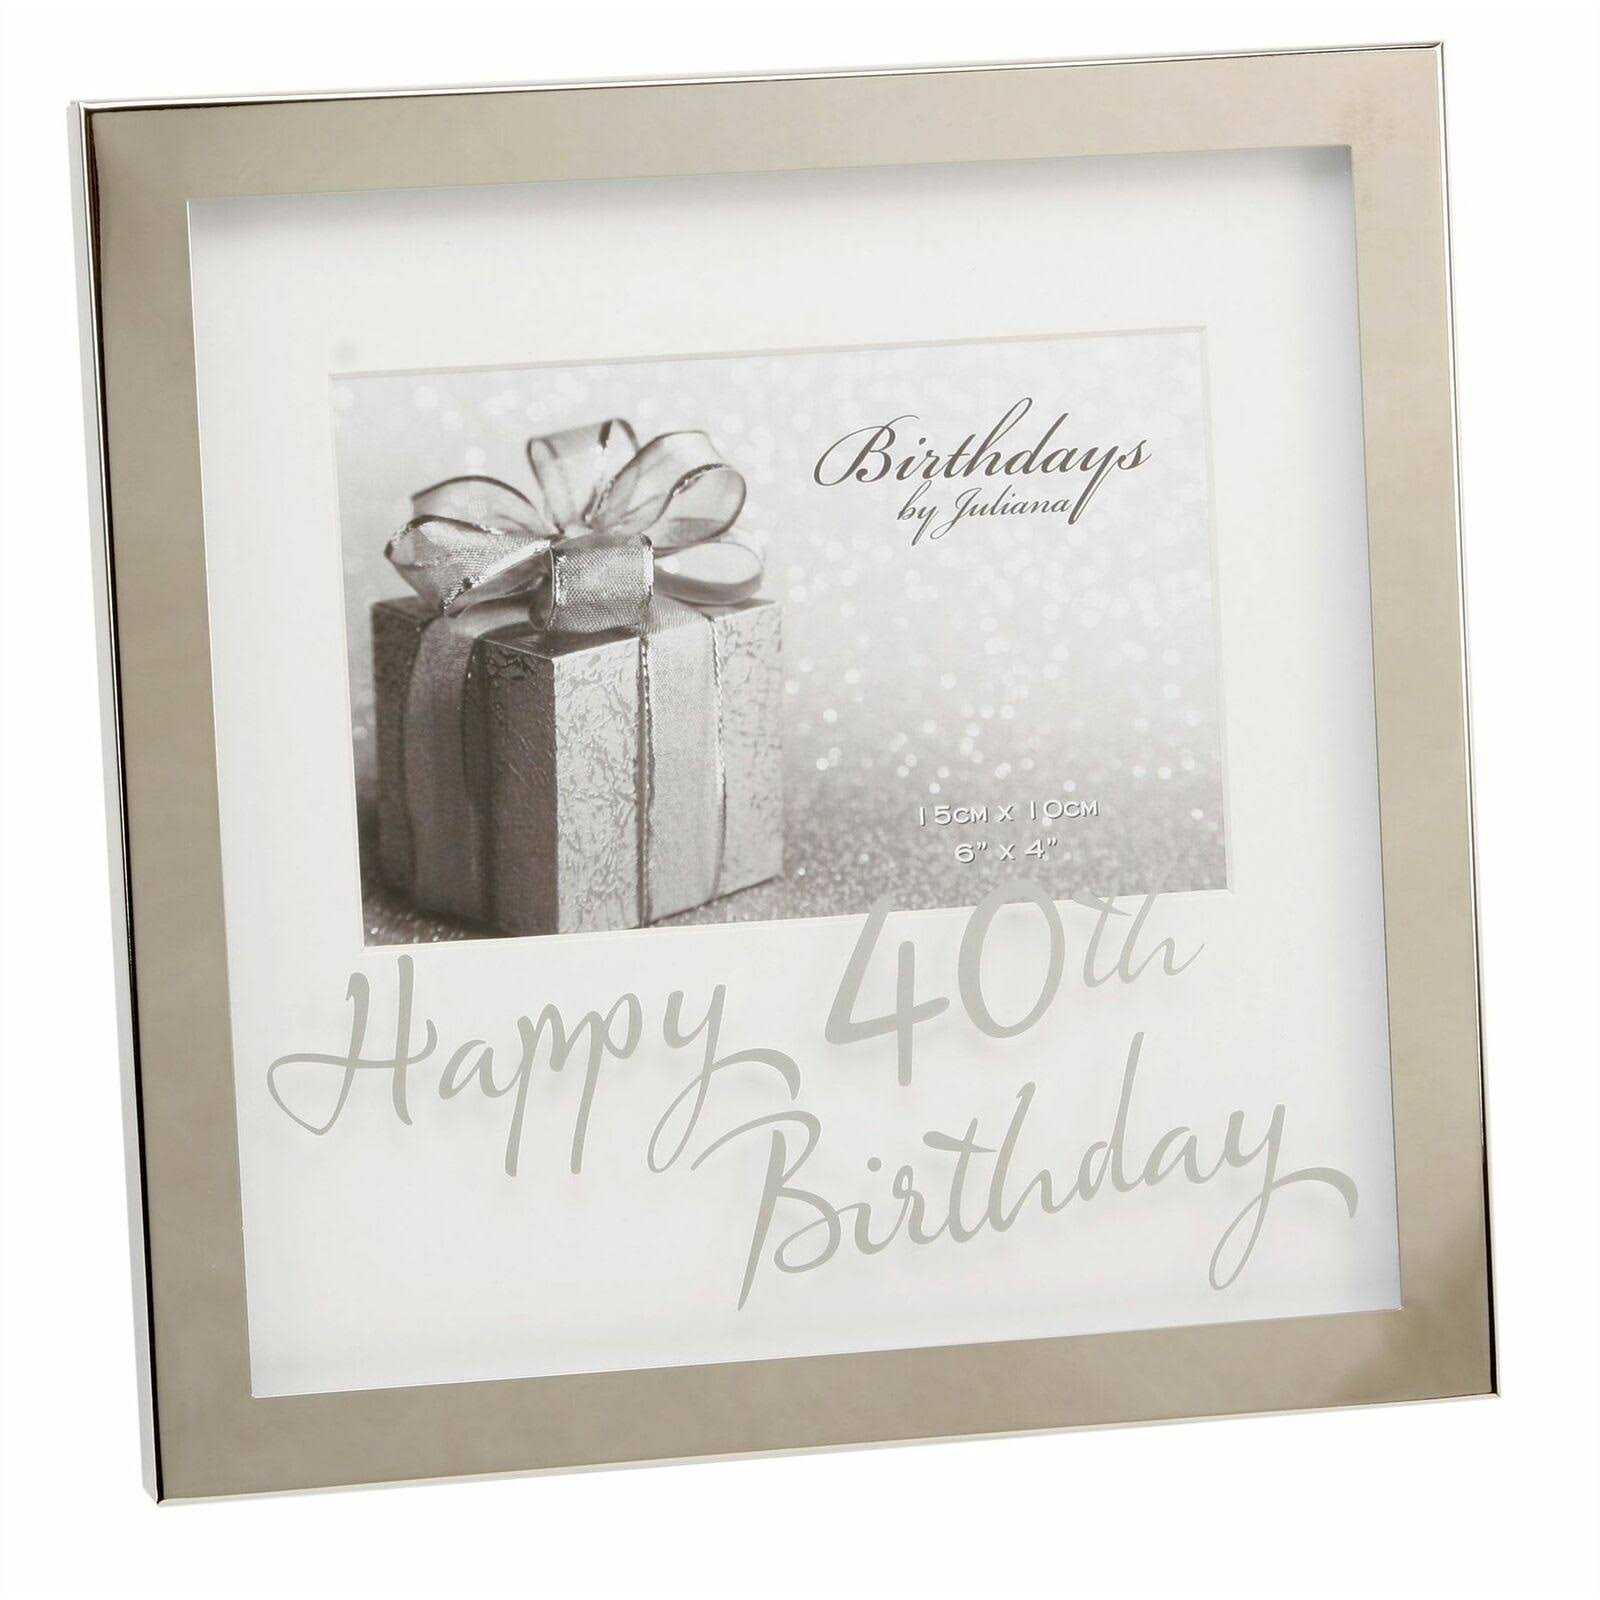 Juliana Happy 40th Birthday 6 x 4 Photo Frame